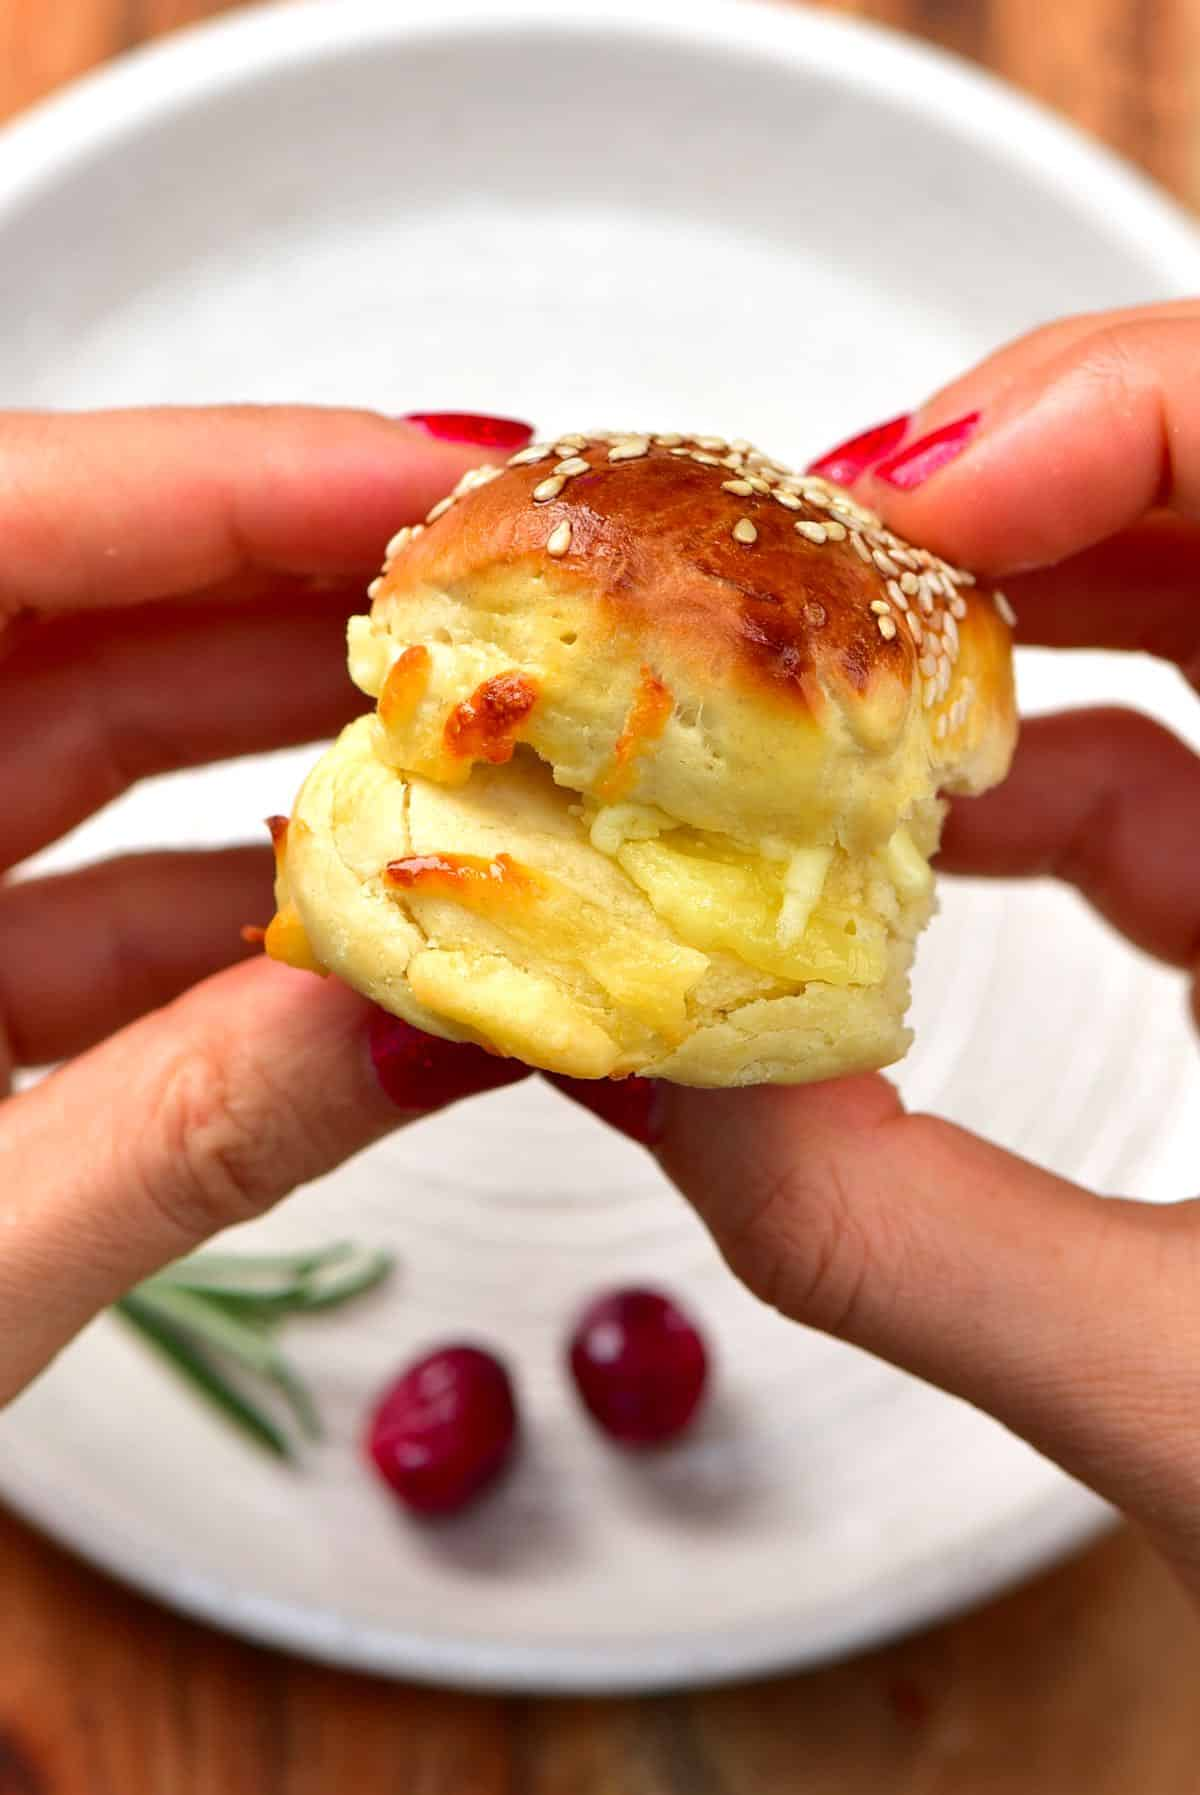 Close up of a cheese bun held by hands